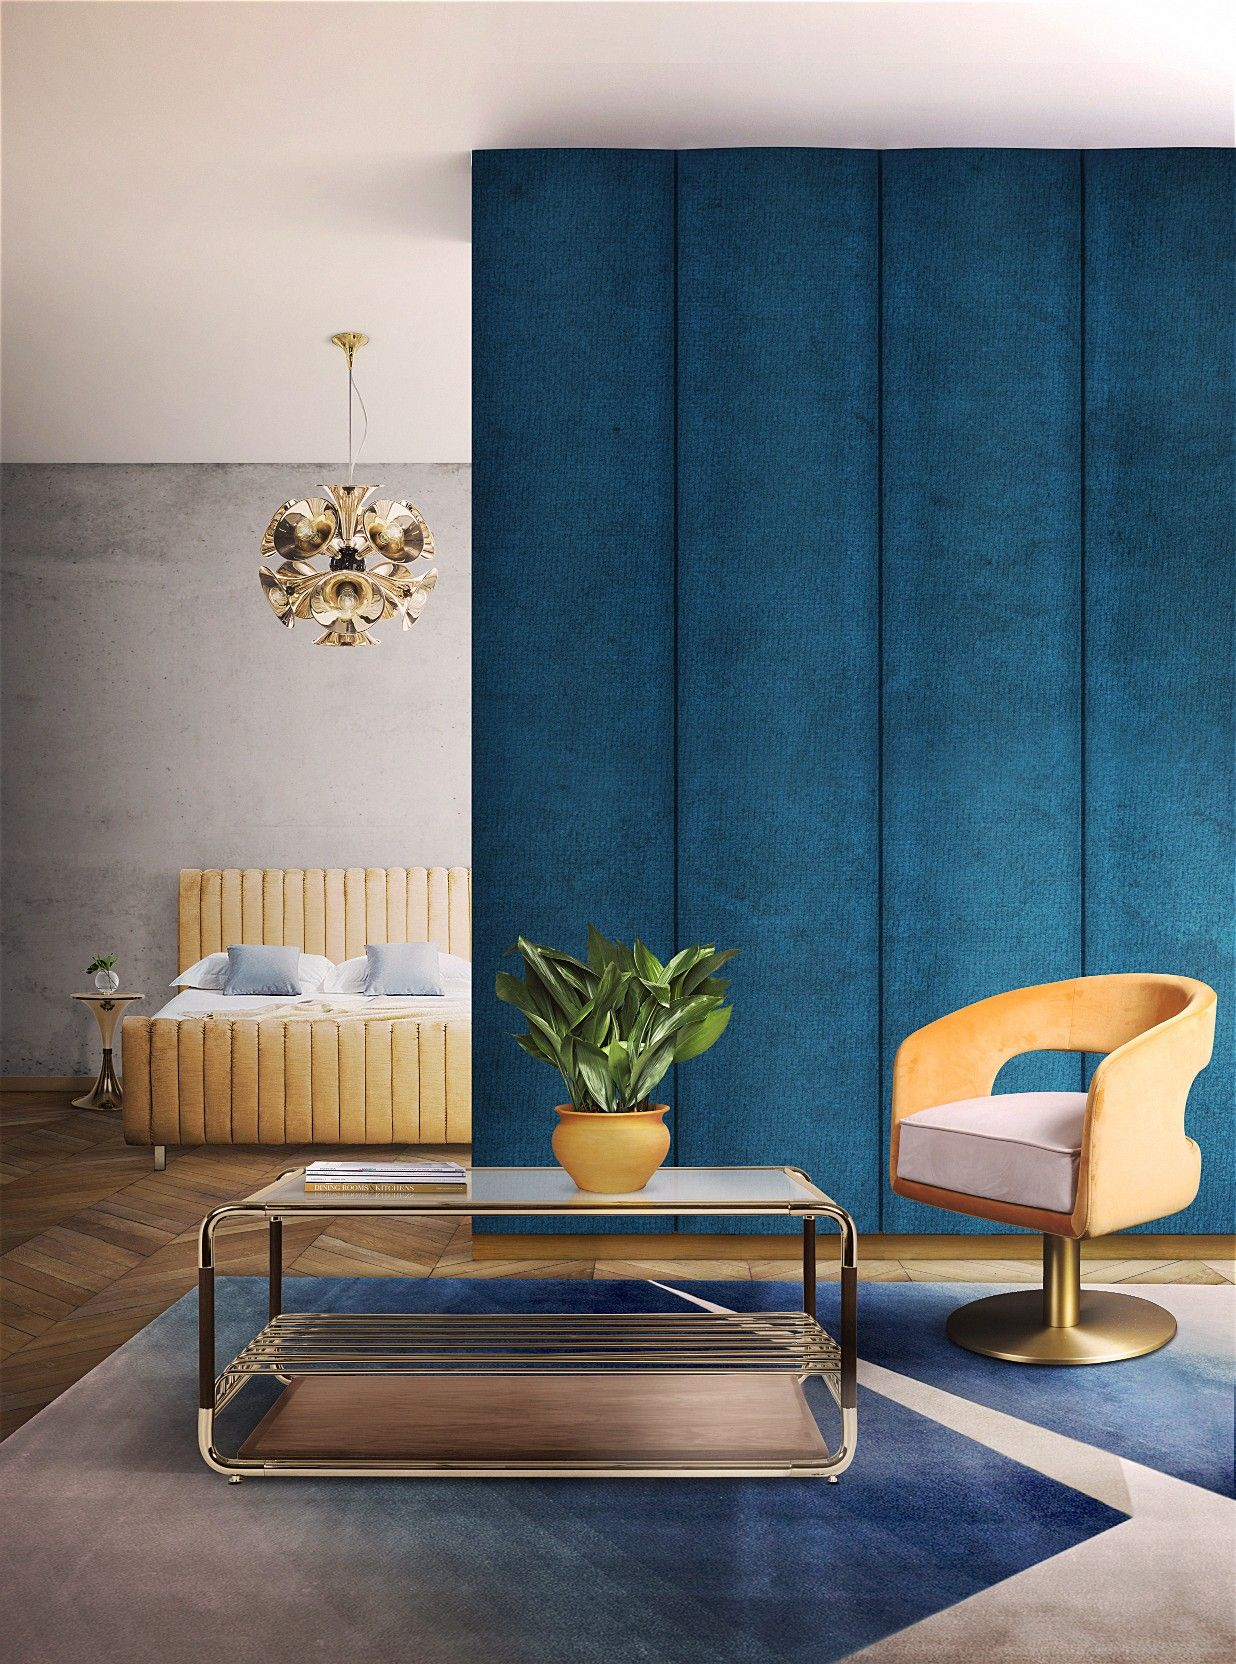 Contemporary Home Decor in the Heart of NYC. The most inspiring ...